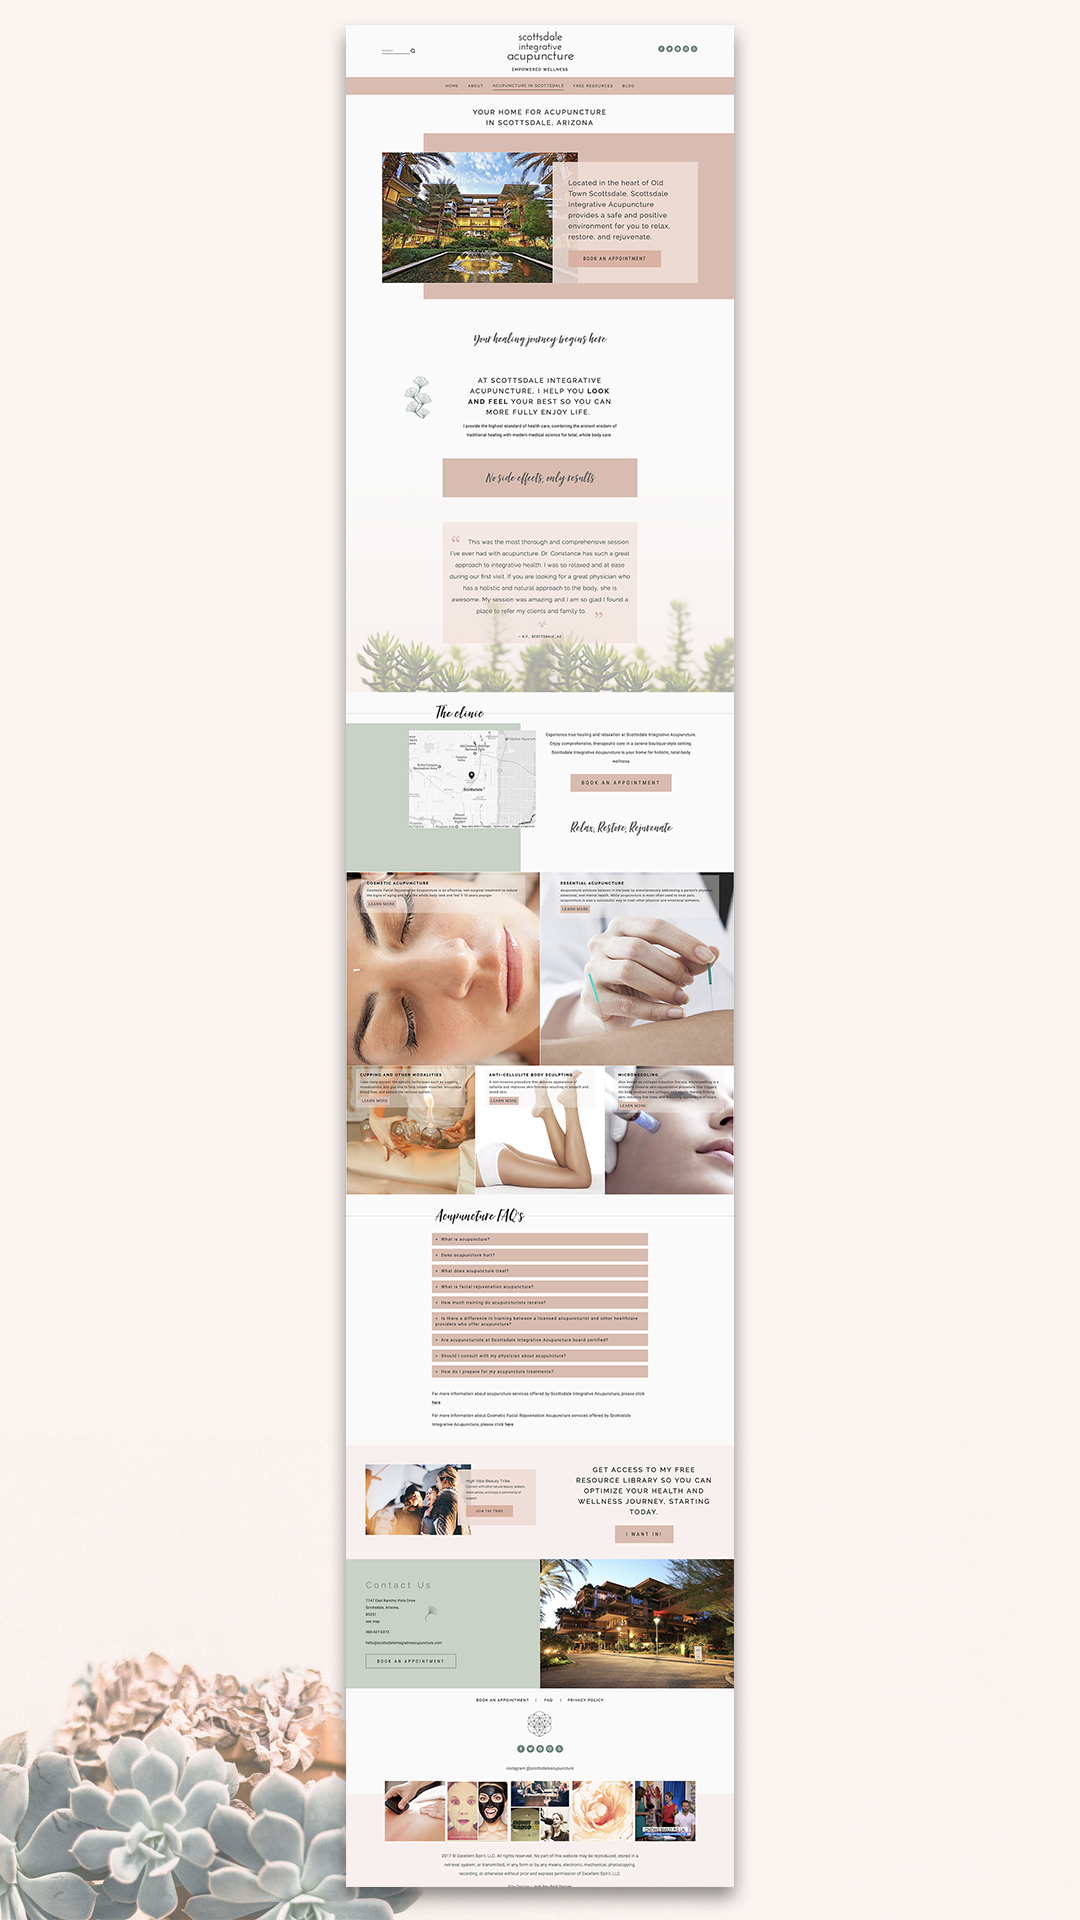 Scottsdale Integrative Acupuncture Services page | Squarespace web design by Jodi Neufeld Design